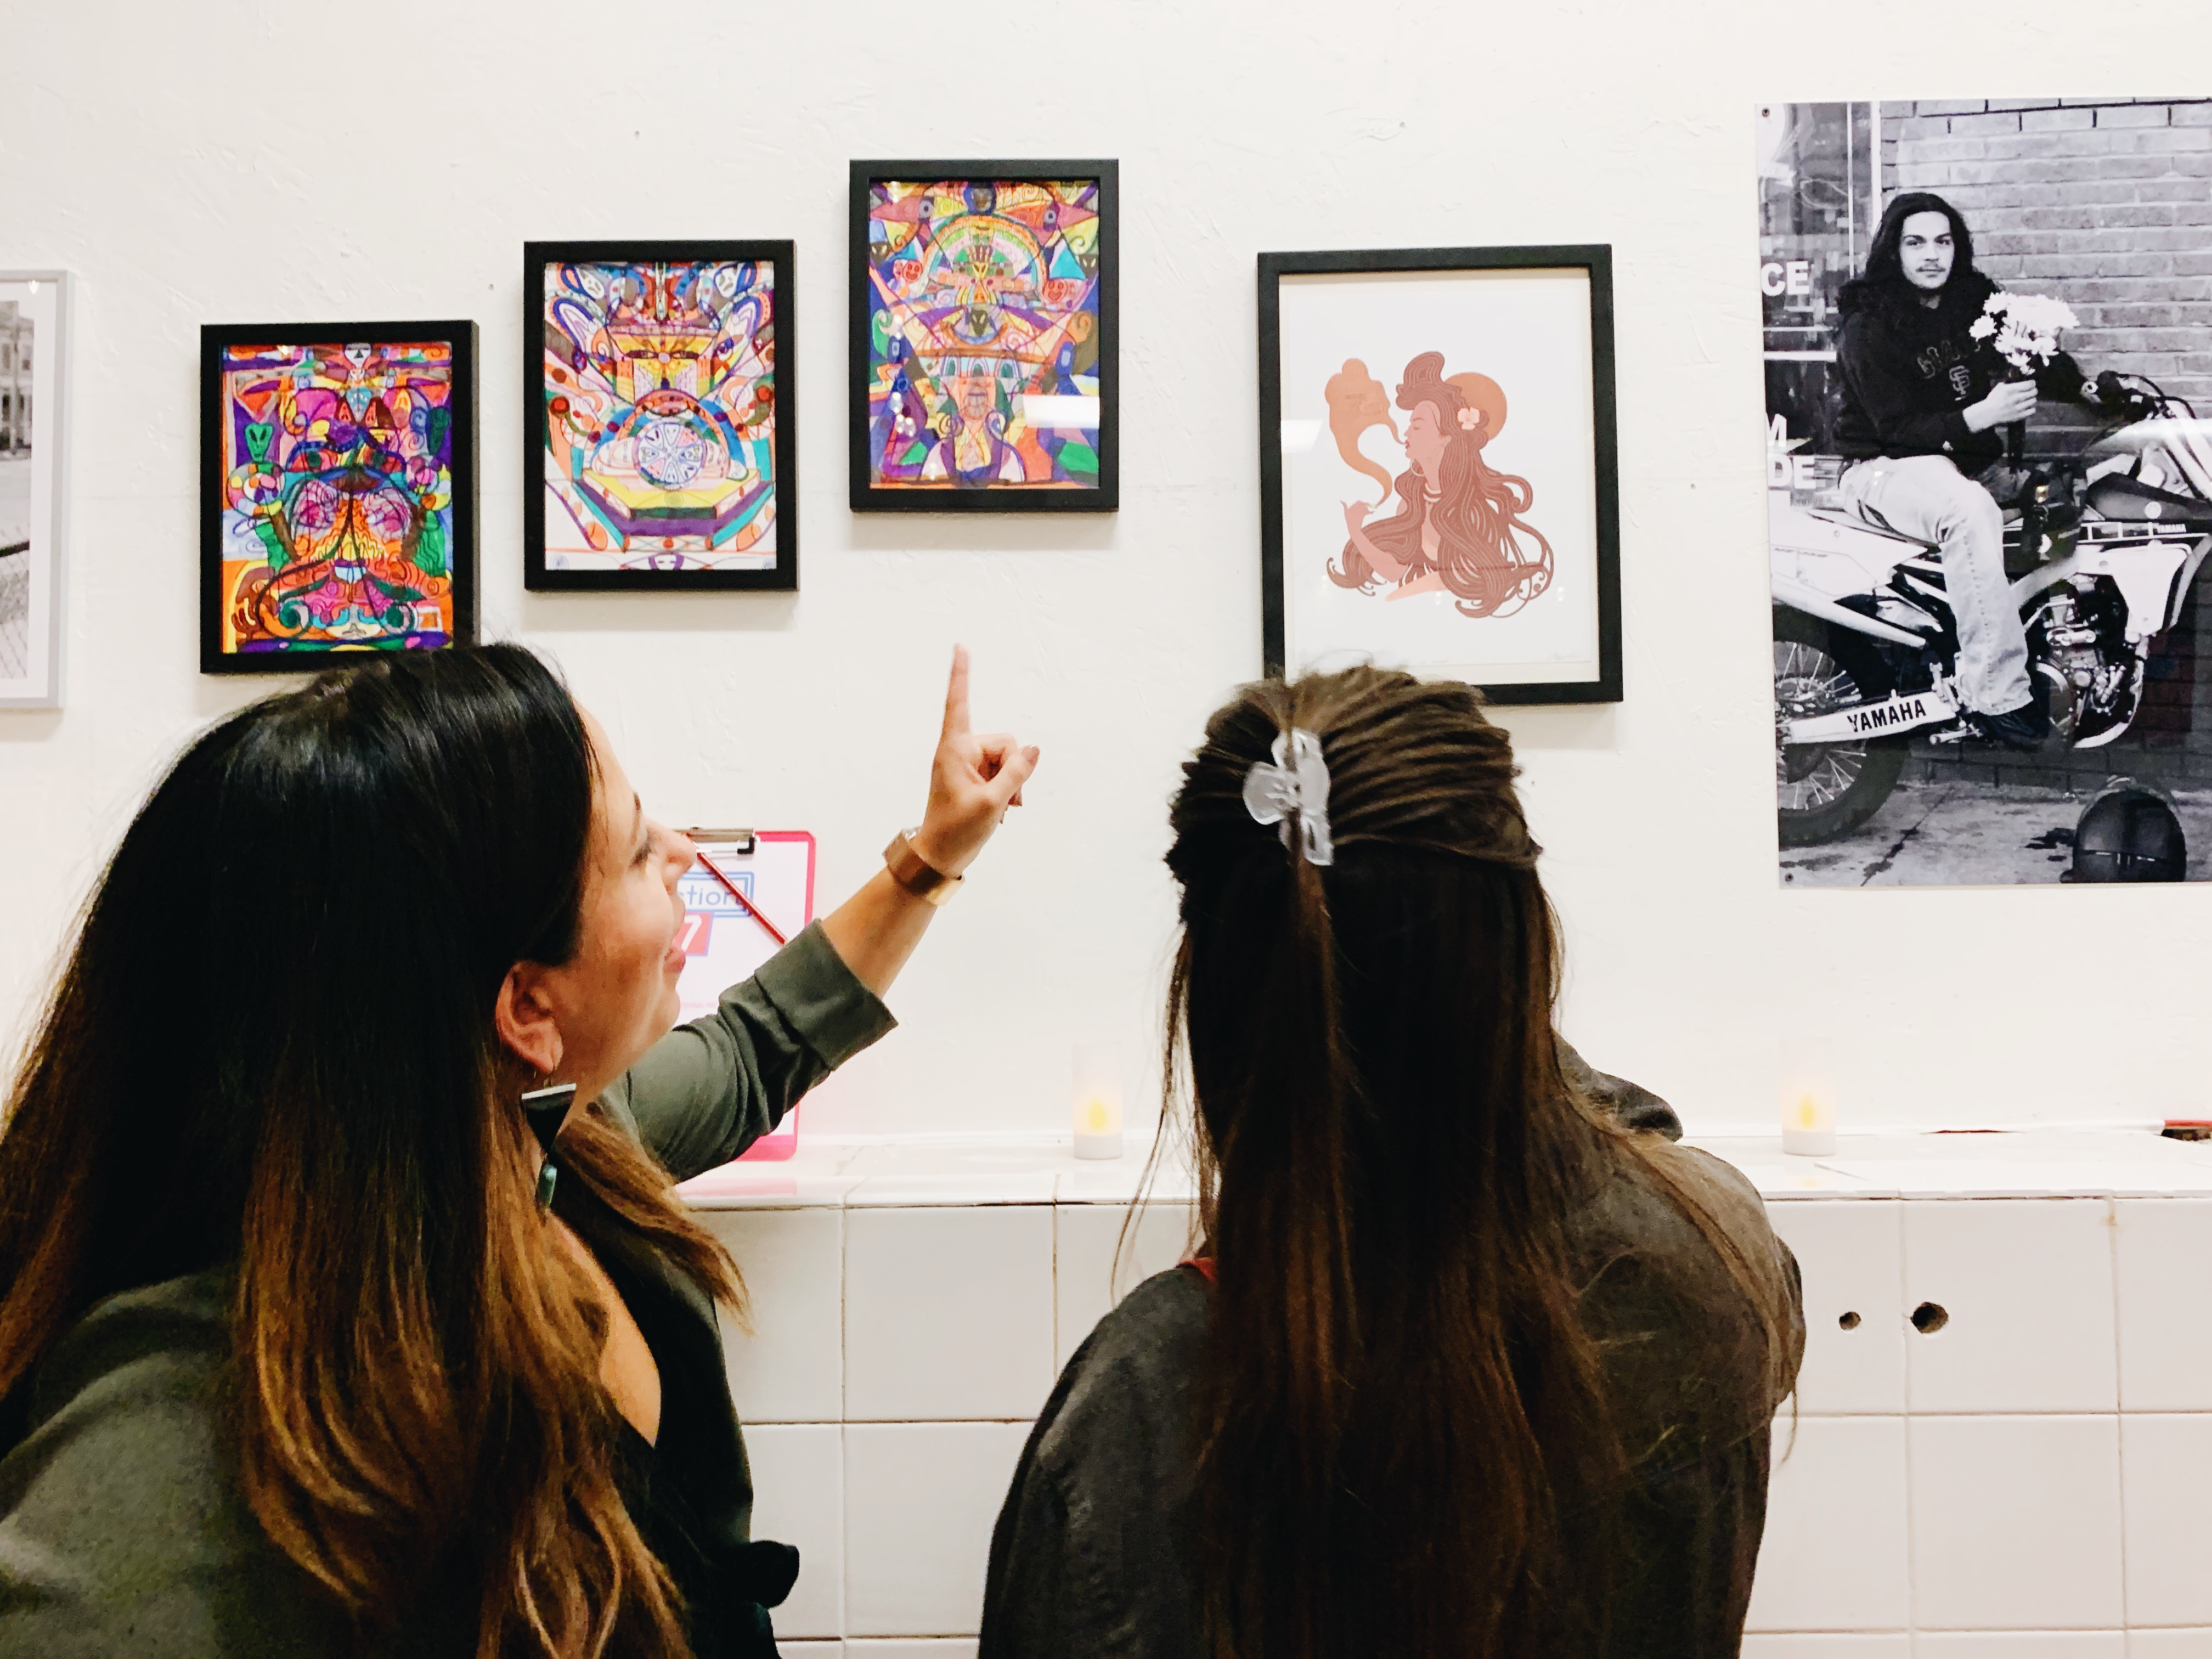 Your work on our walls', The Crowdsourced Art Show in SF